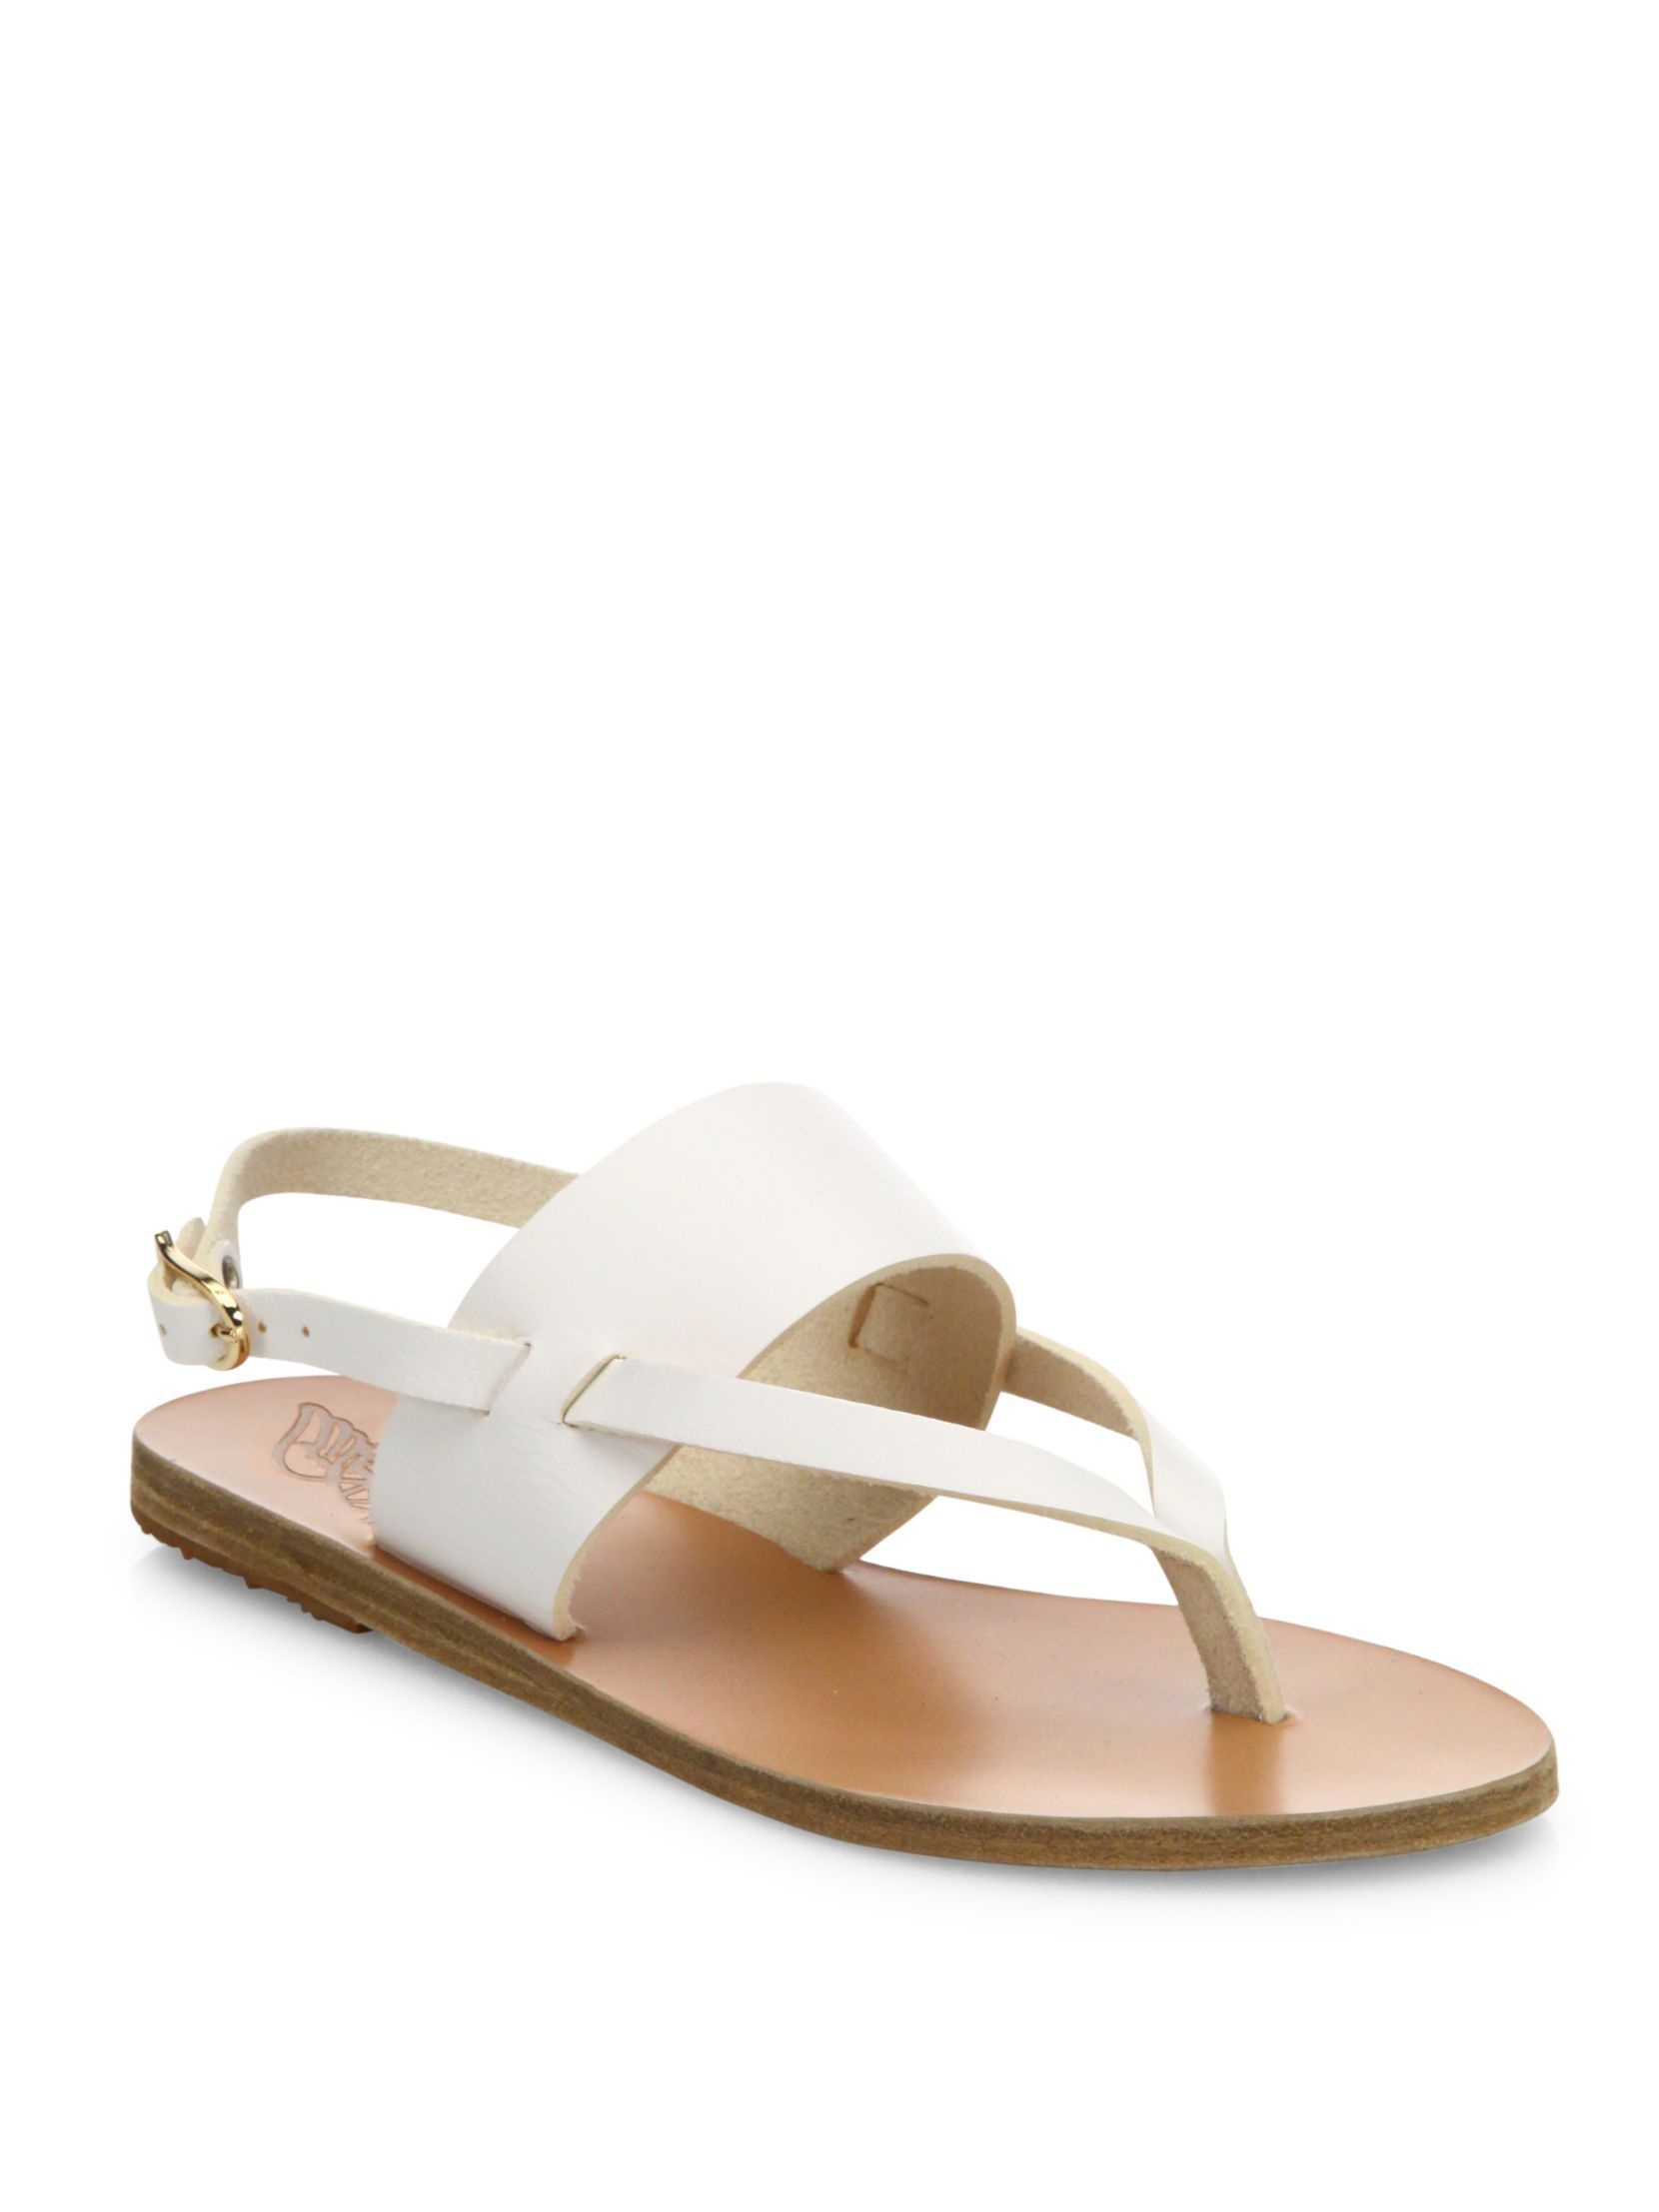 28e738221 Ancient Greek Sandals Zoe Leather Thong Slingback Sandals